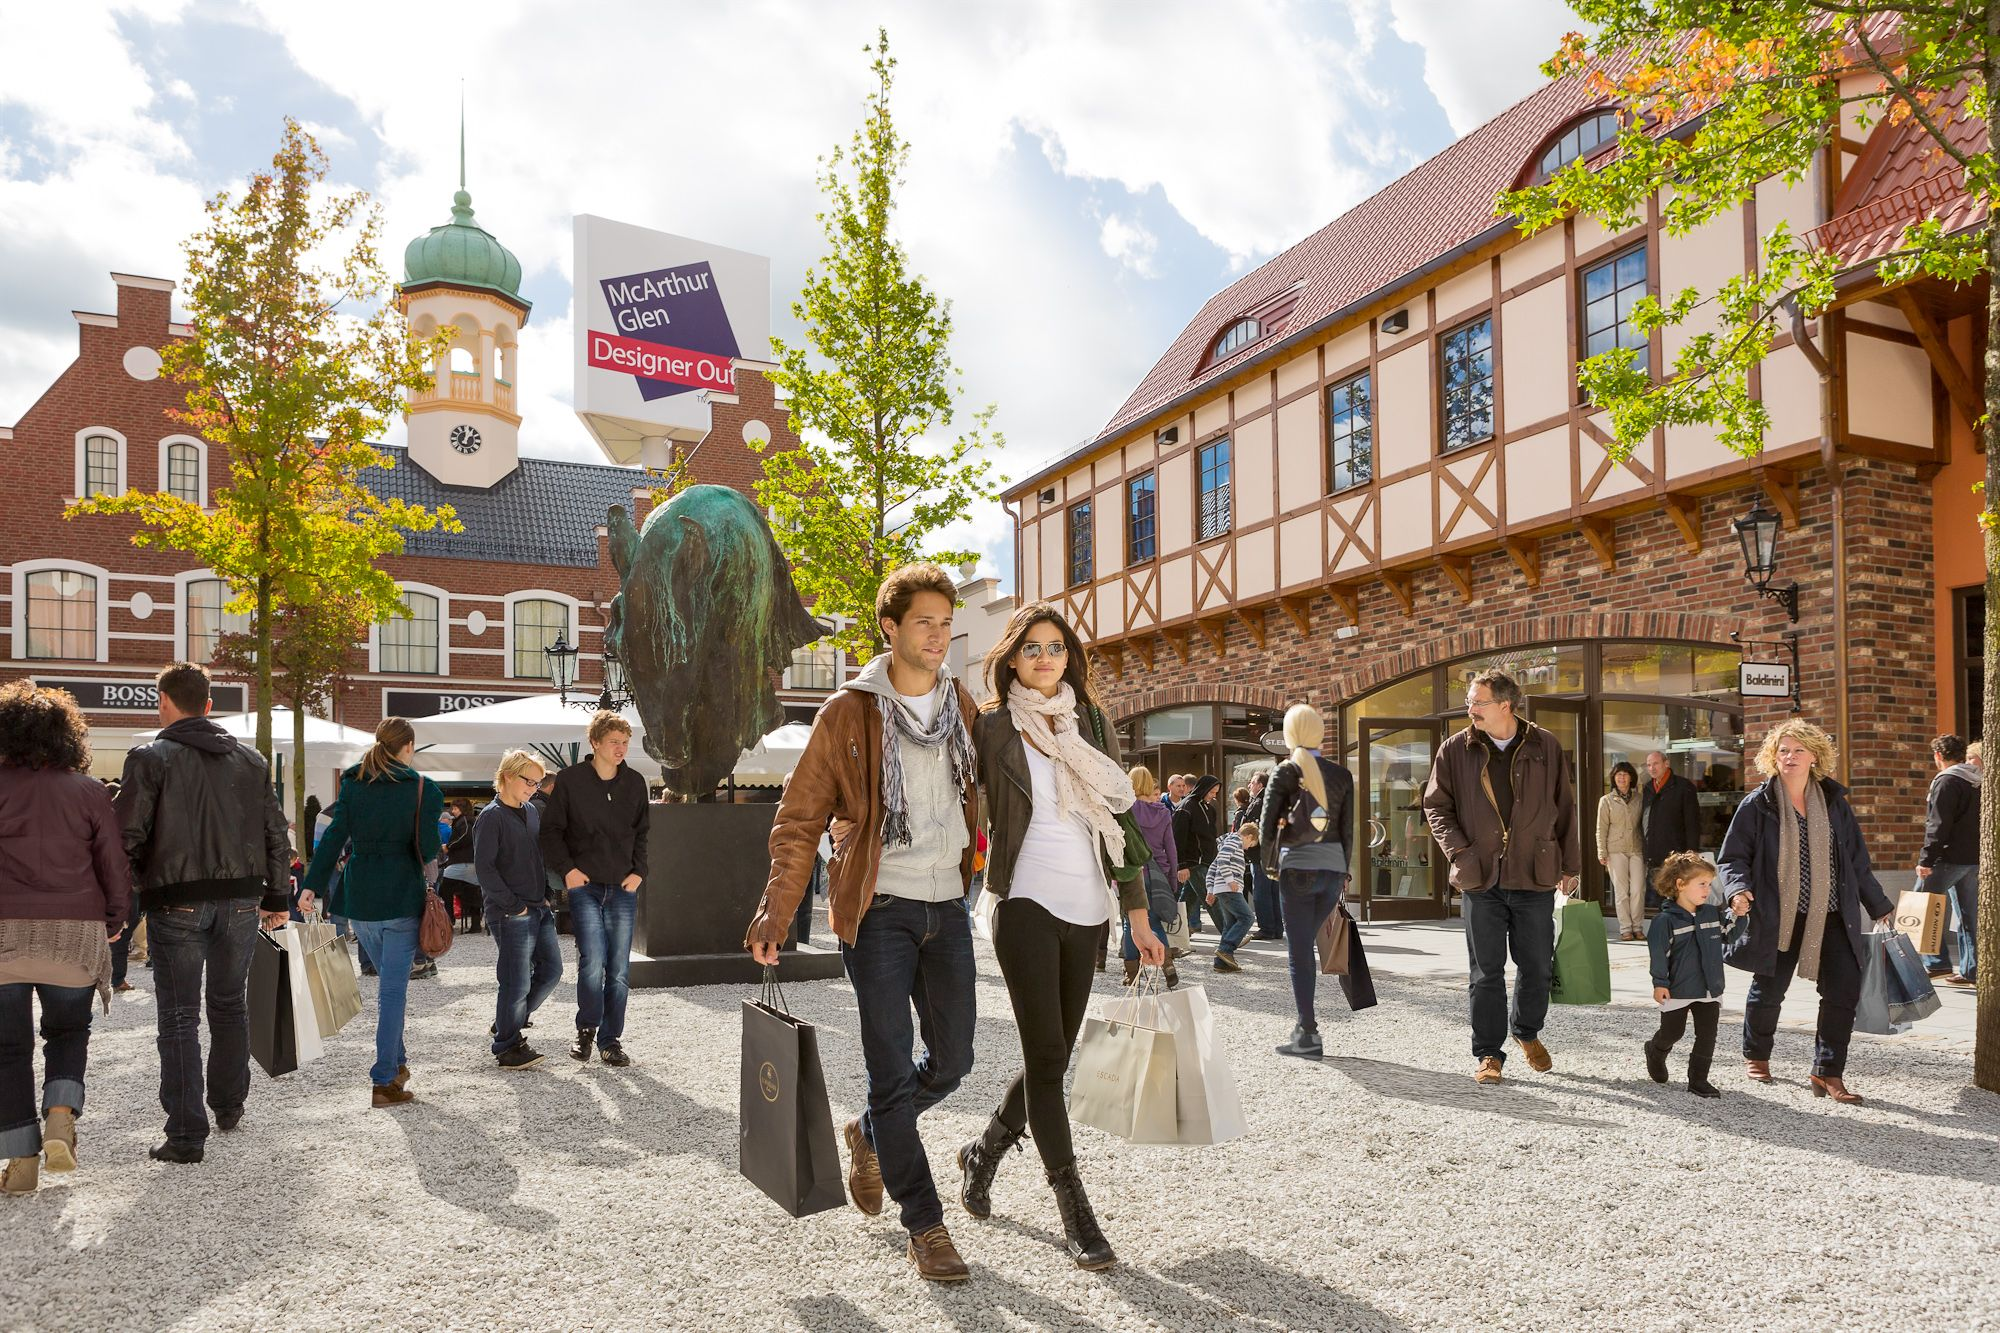 Chinese tourists deliver record sales for McArthurGlen - http://goo.gl/NDDVGC